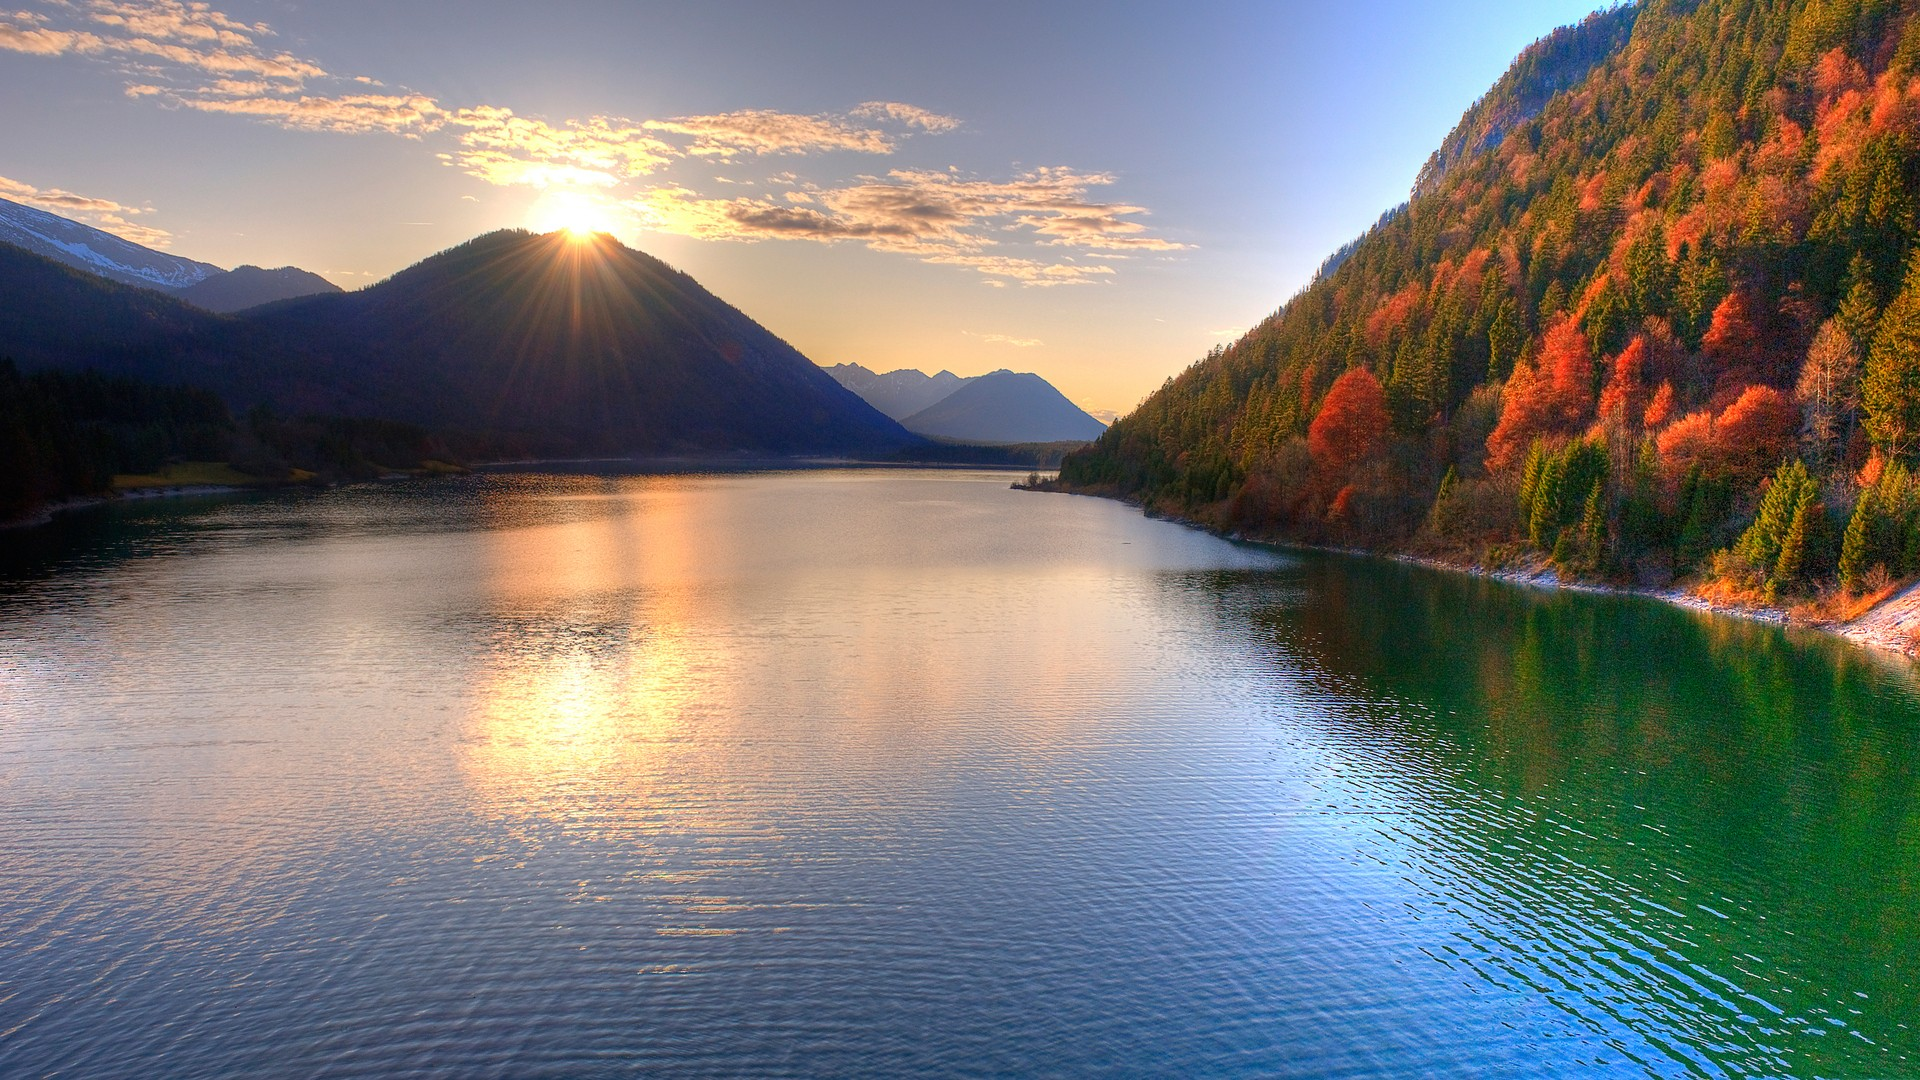 water, mountains, landscapes, sunlight - desktop wallpaper